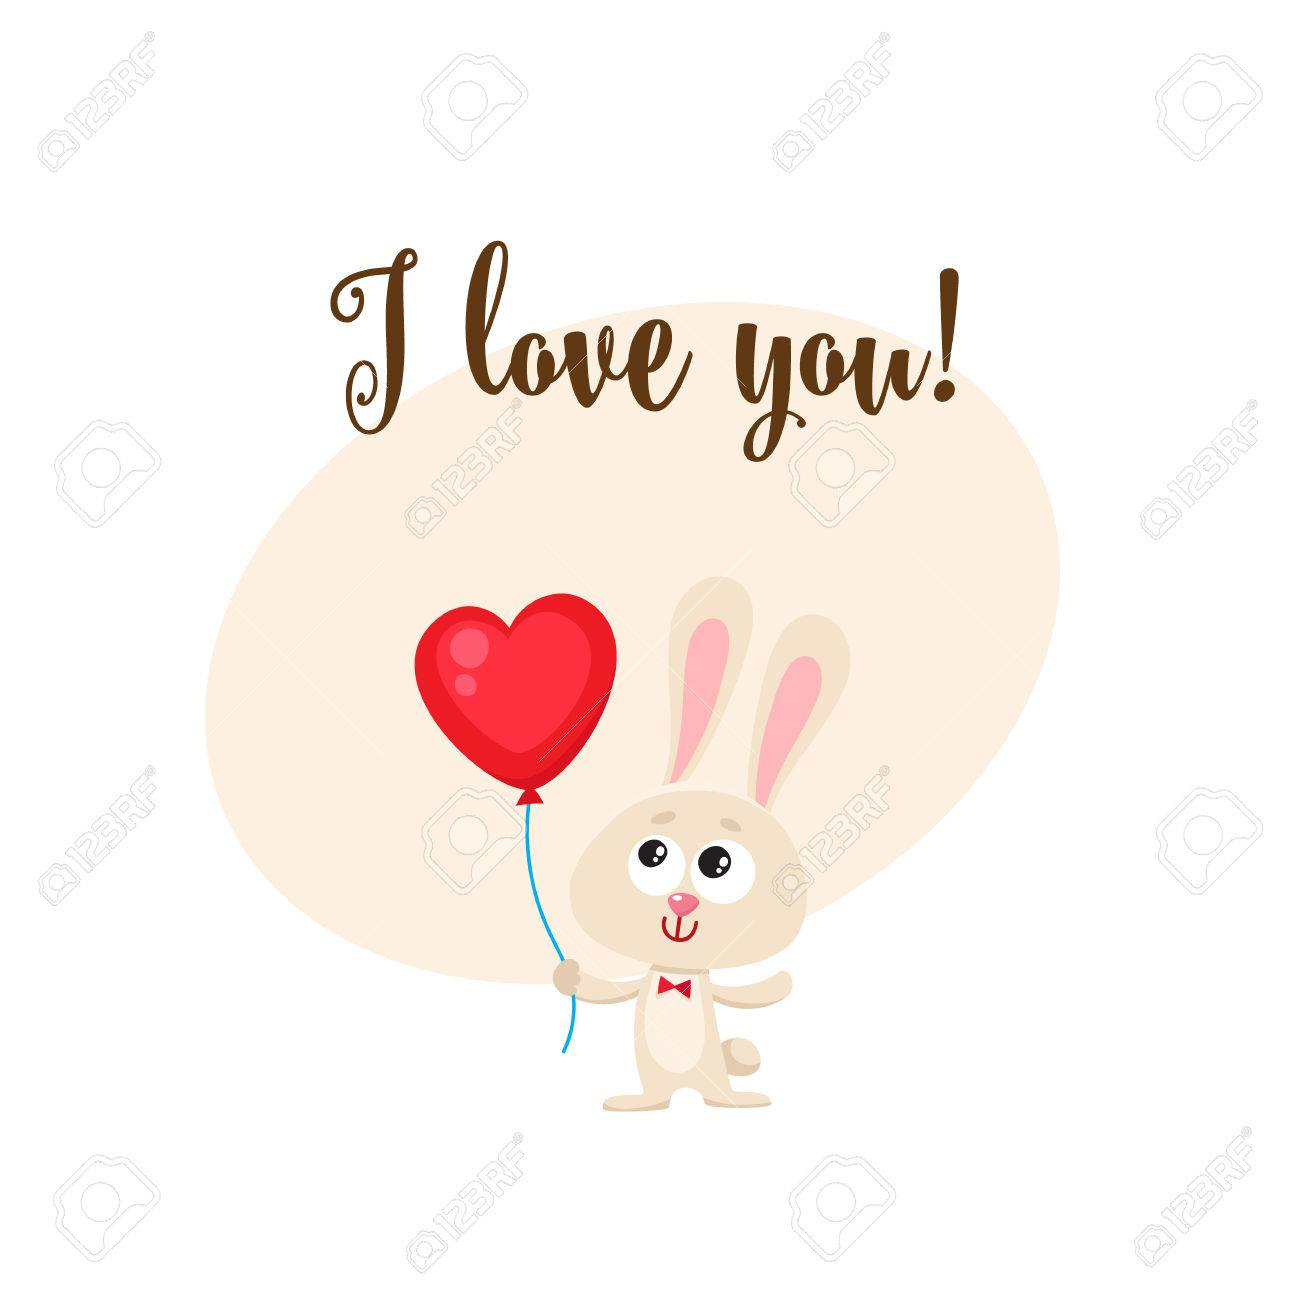 i love you greeting card banner template with cute funny rabbit